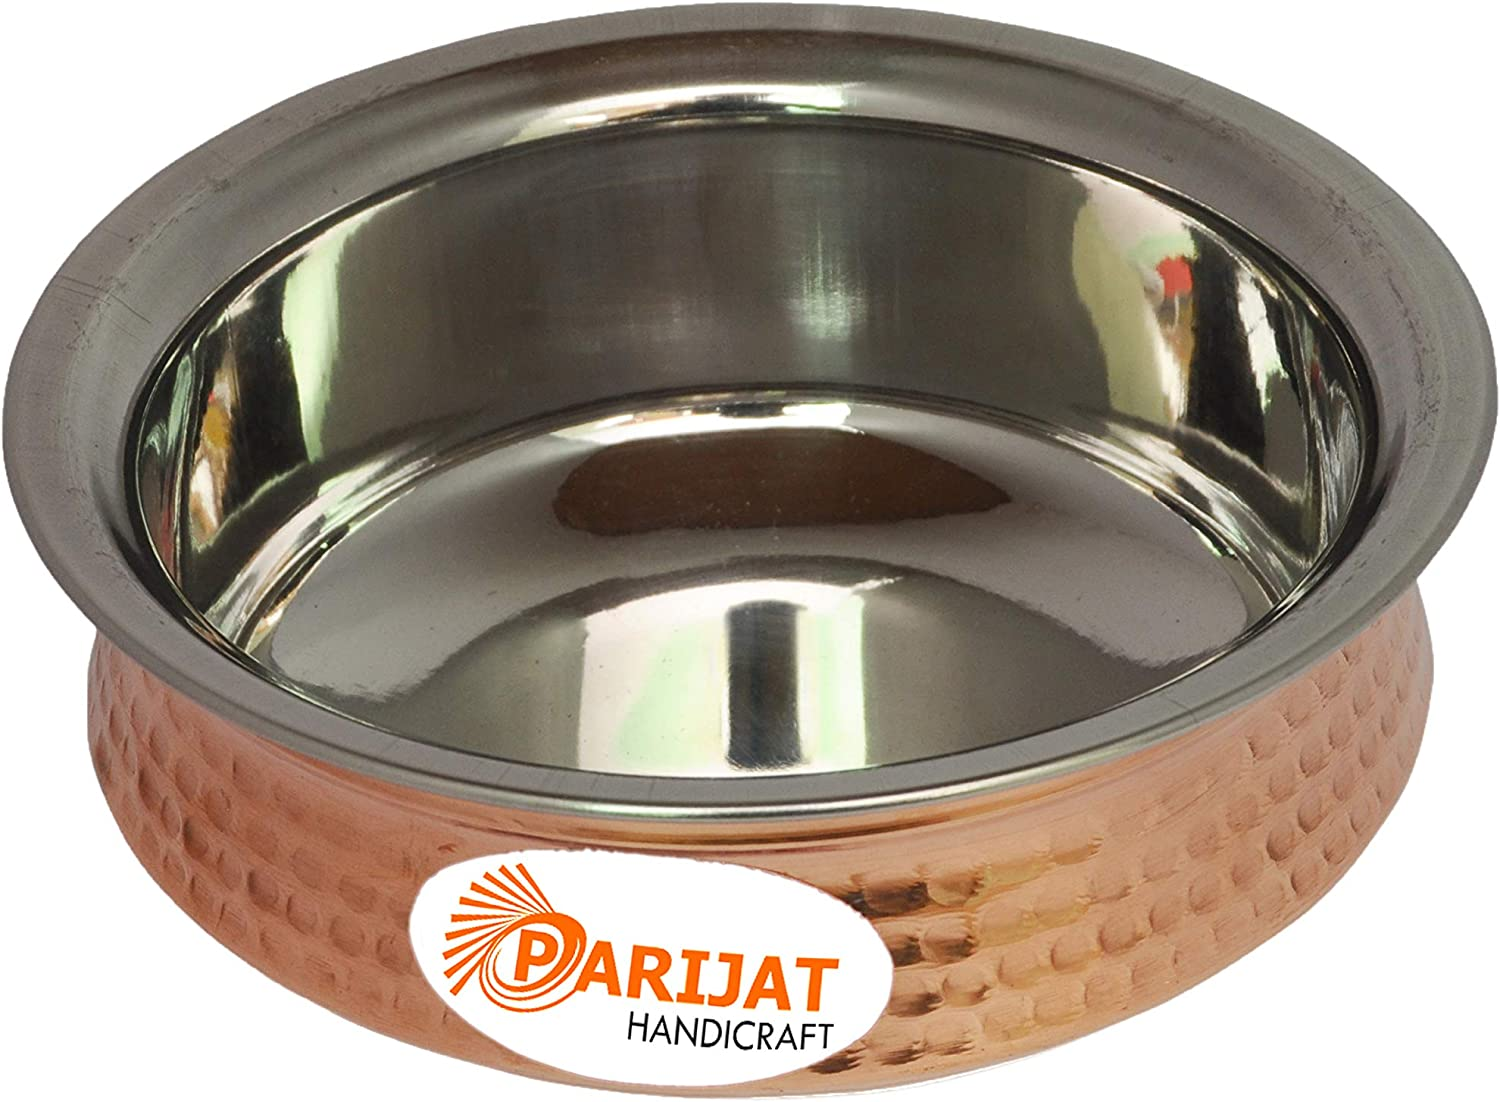 PARIJAT HANDICRAFT Serving Cheap super special lowest price price Bowl Tureen Copper Stainless Steel Se